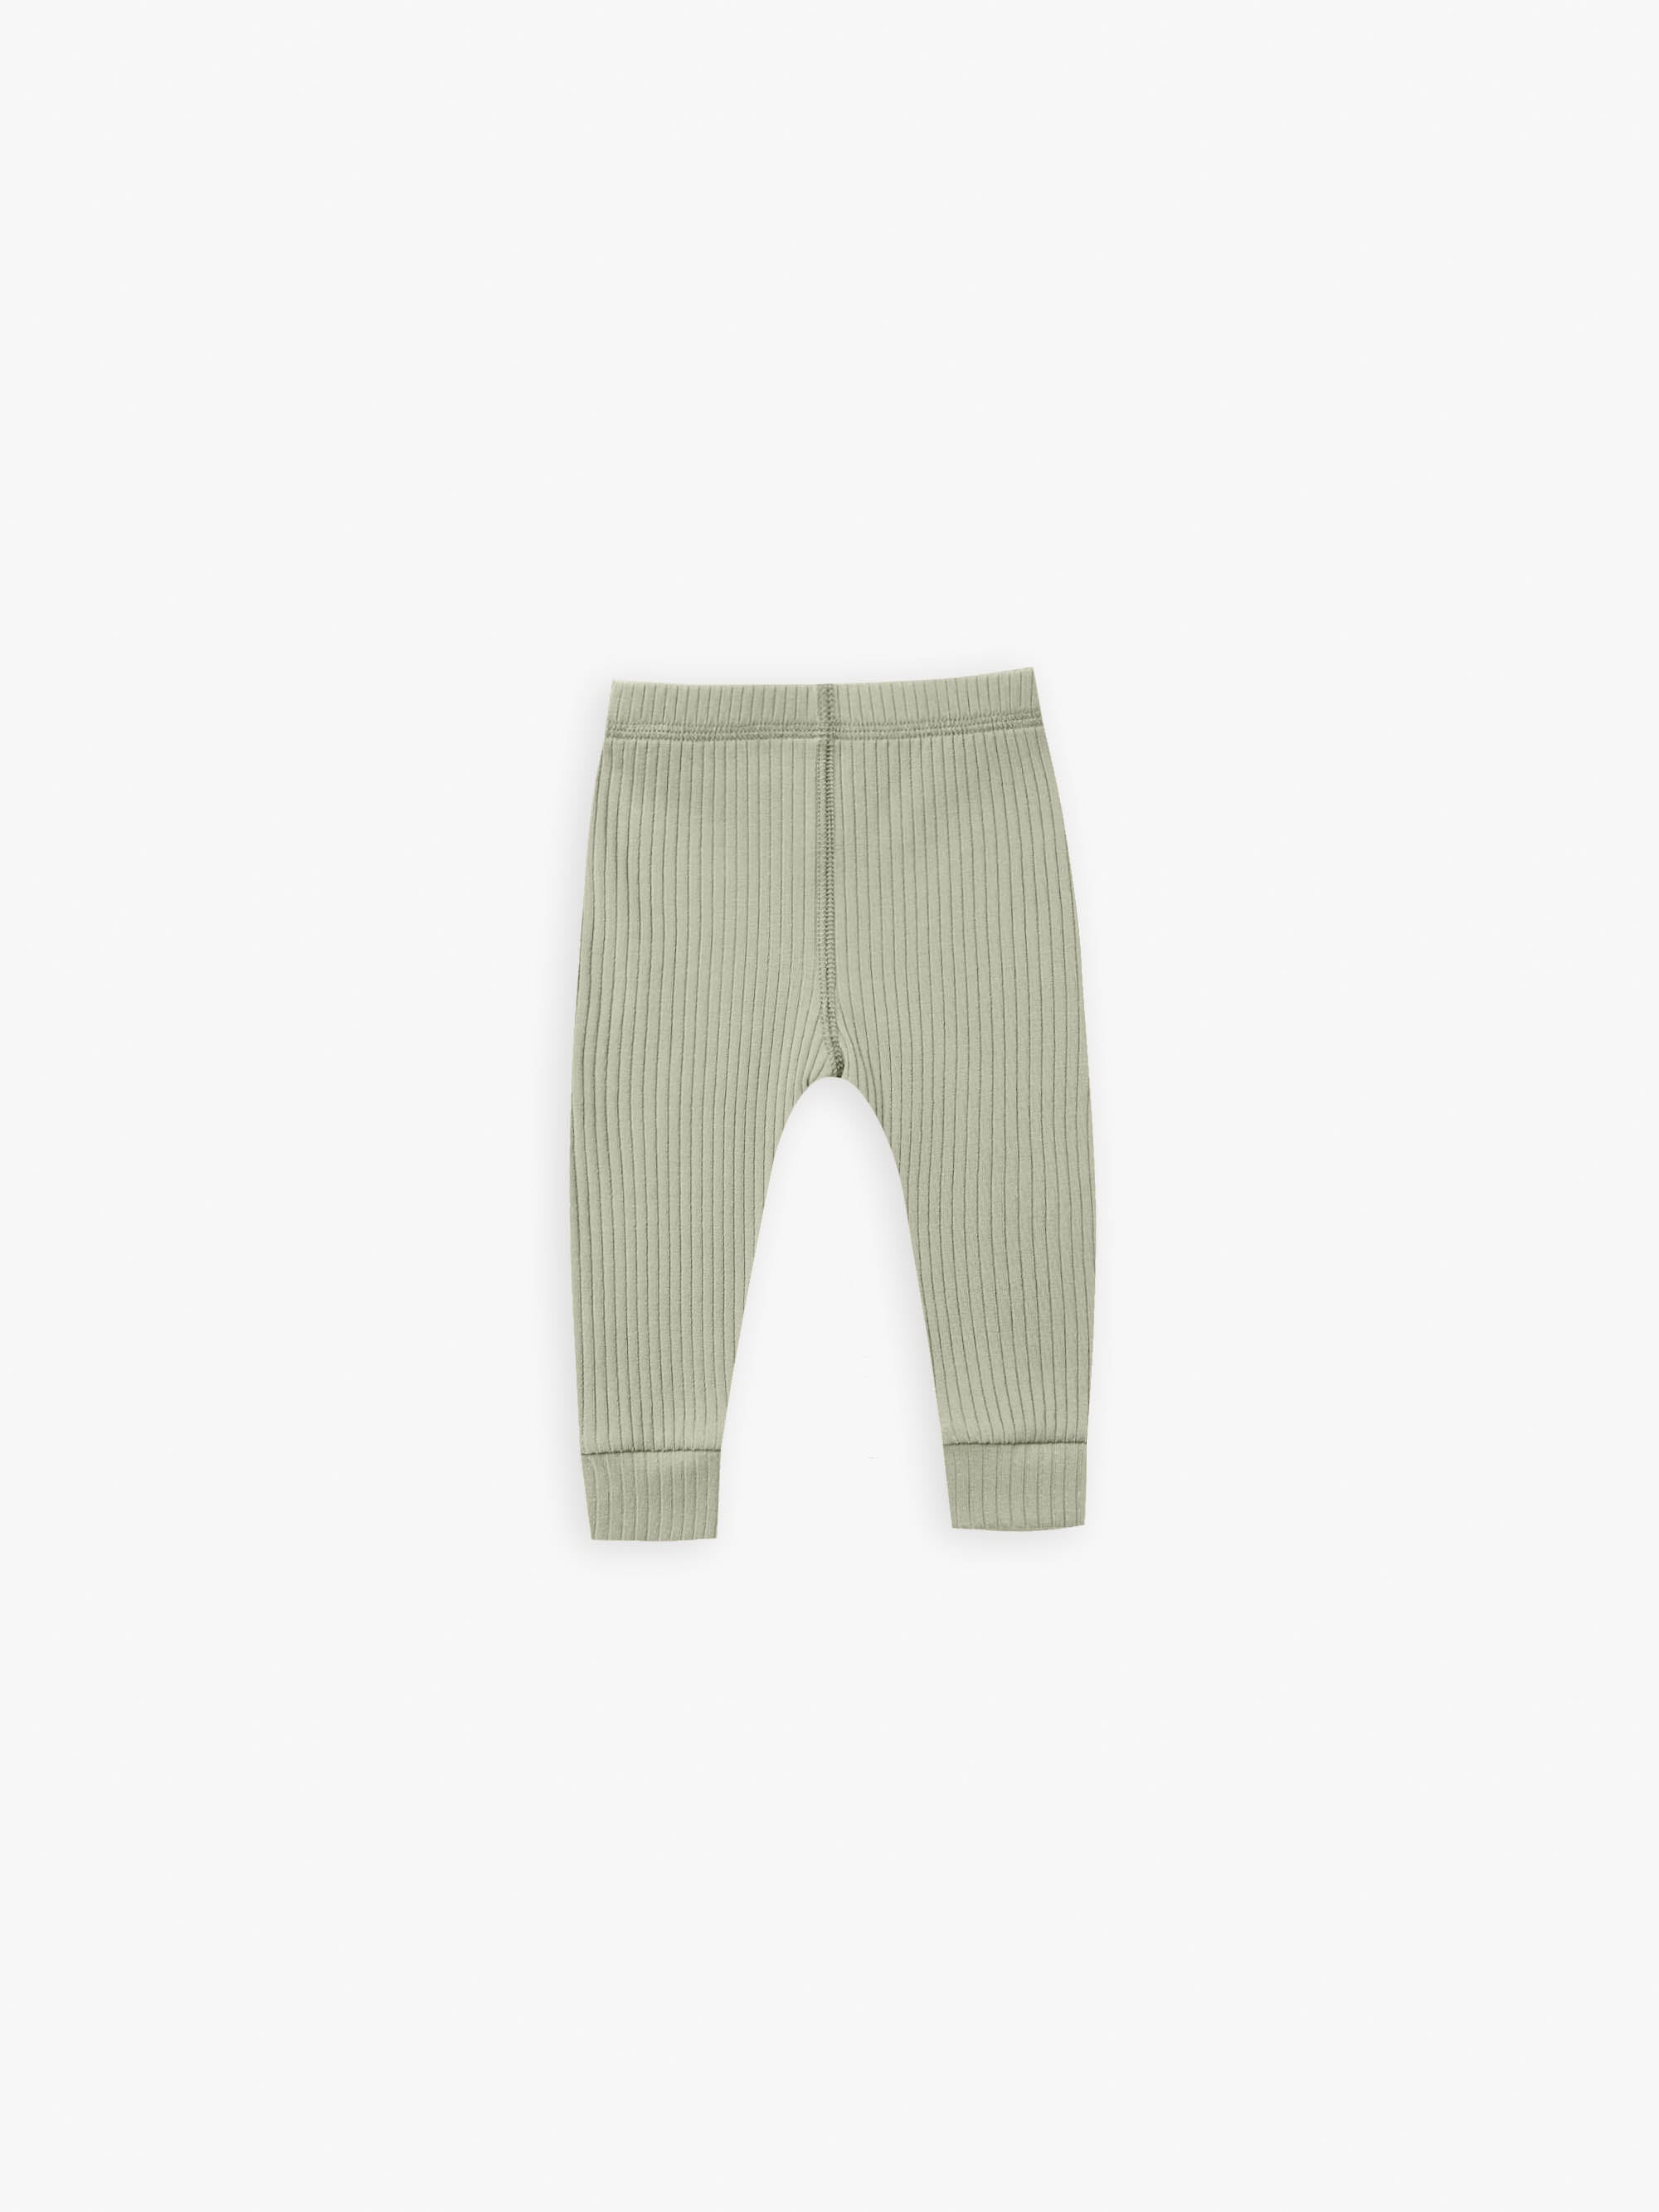 QUINCY MAE SEA 6-12 Months Ribbed Legging Bottoms Clothing, Shoes ...